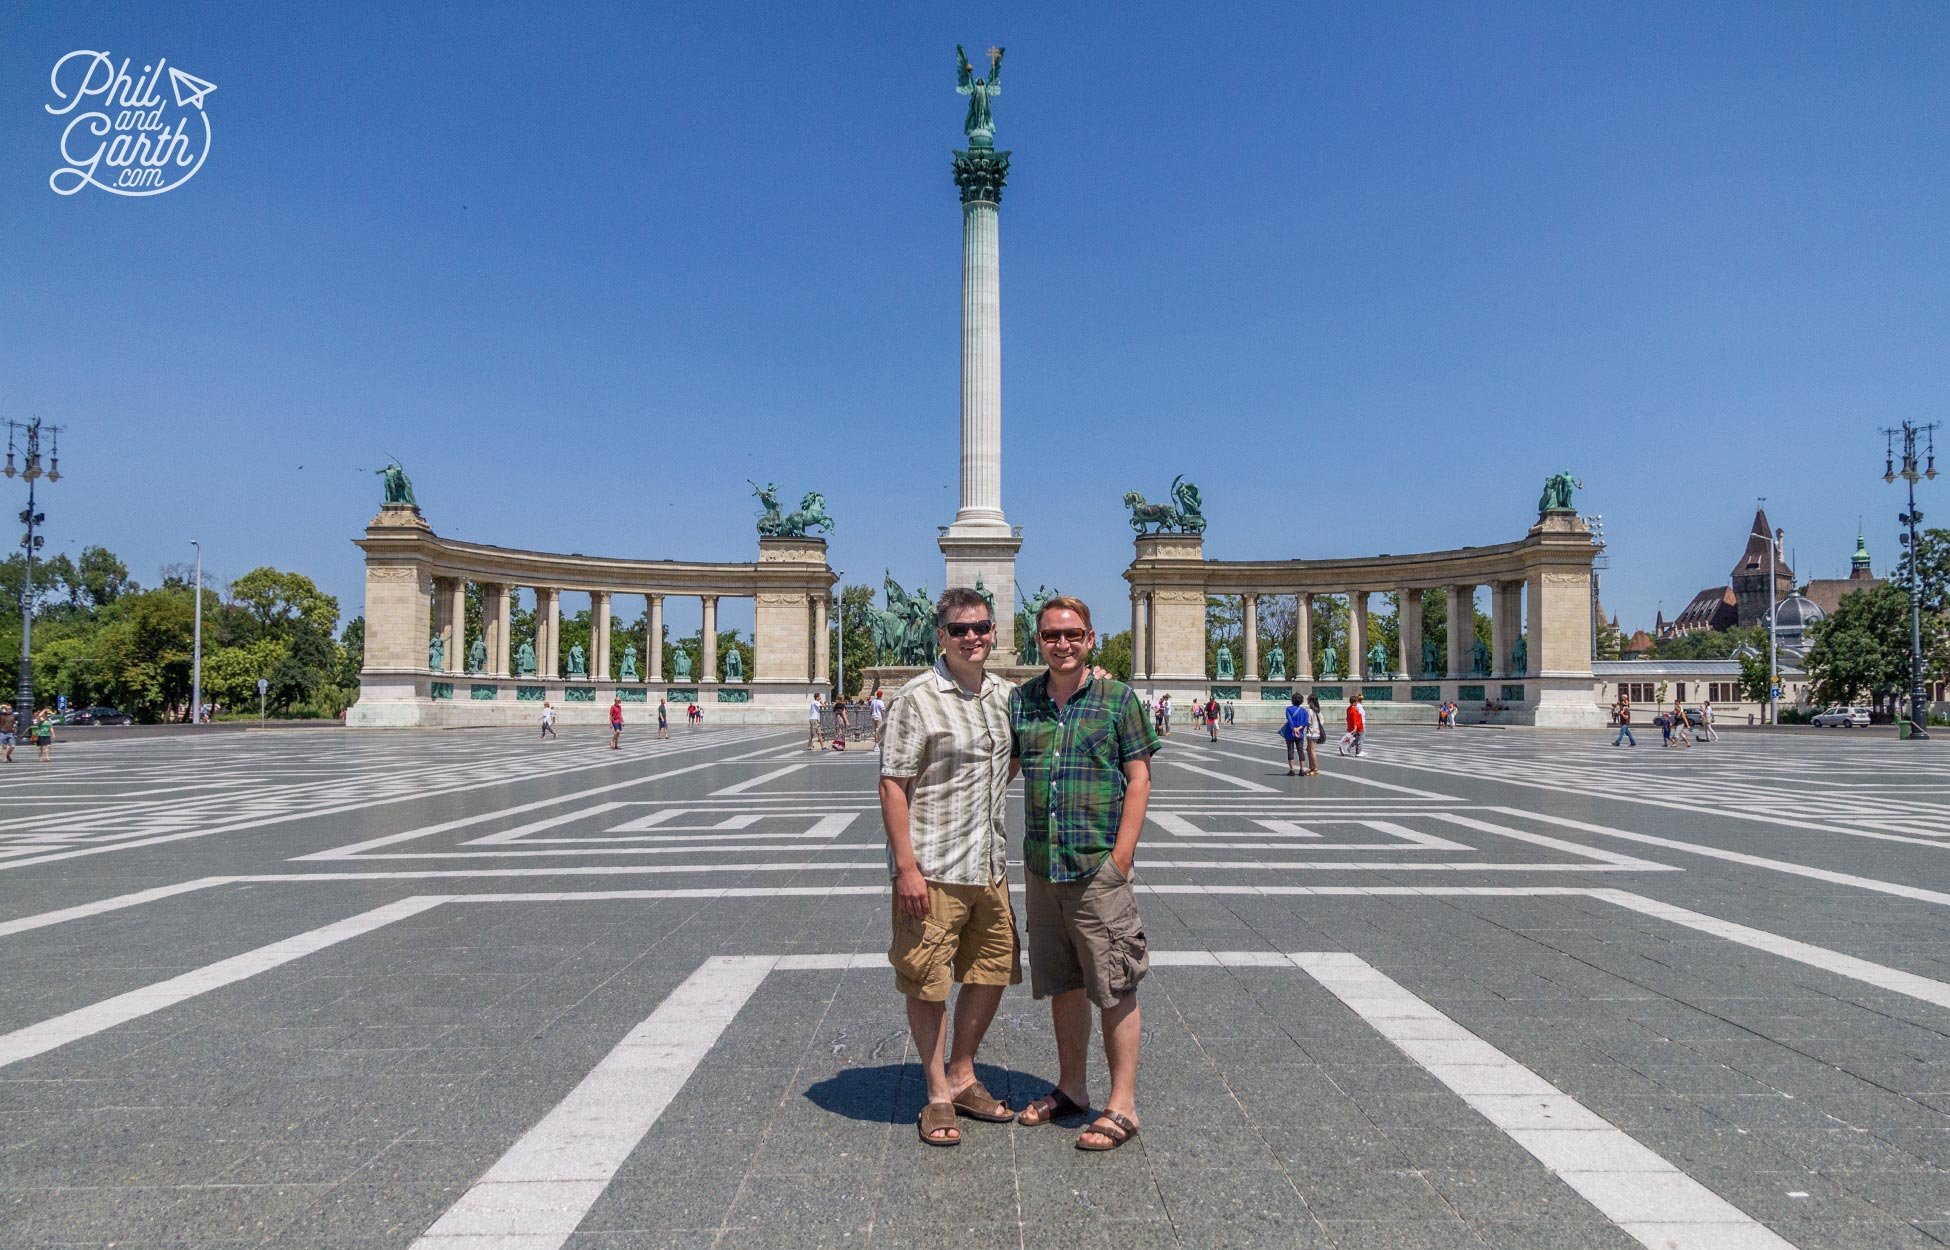 Phil and Garth on Heroes Square, Budapest